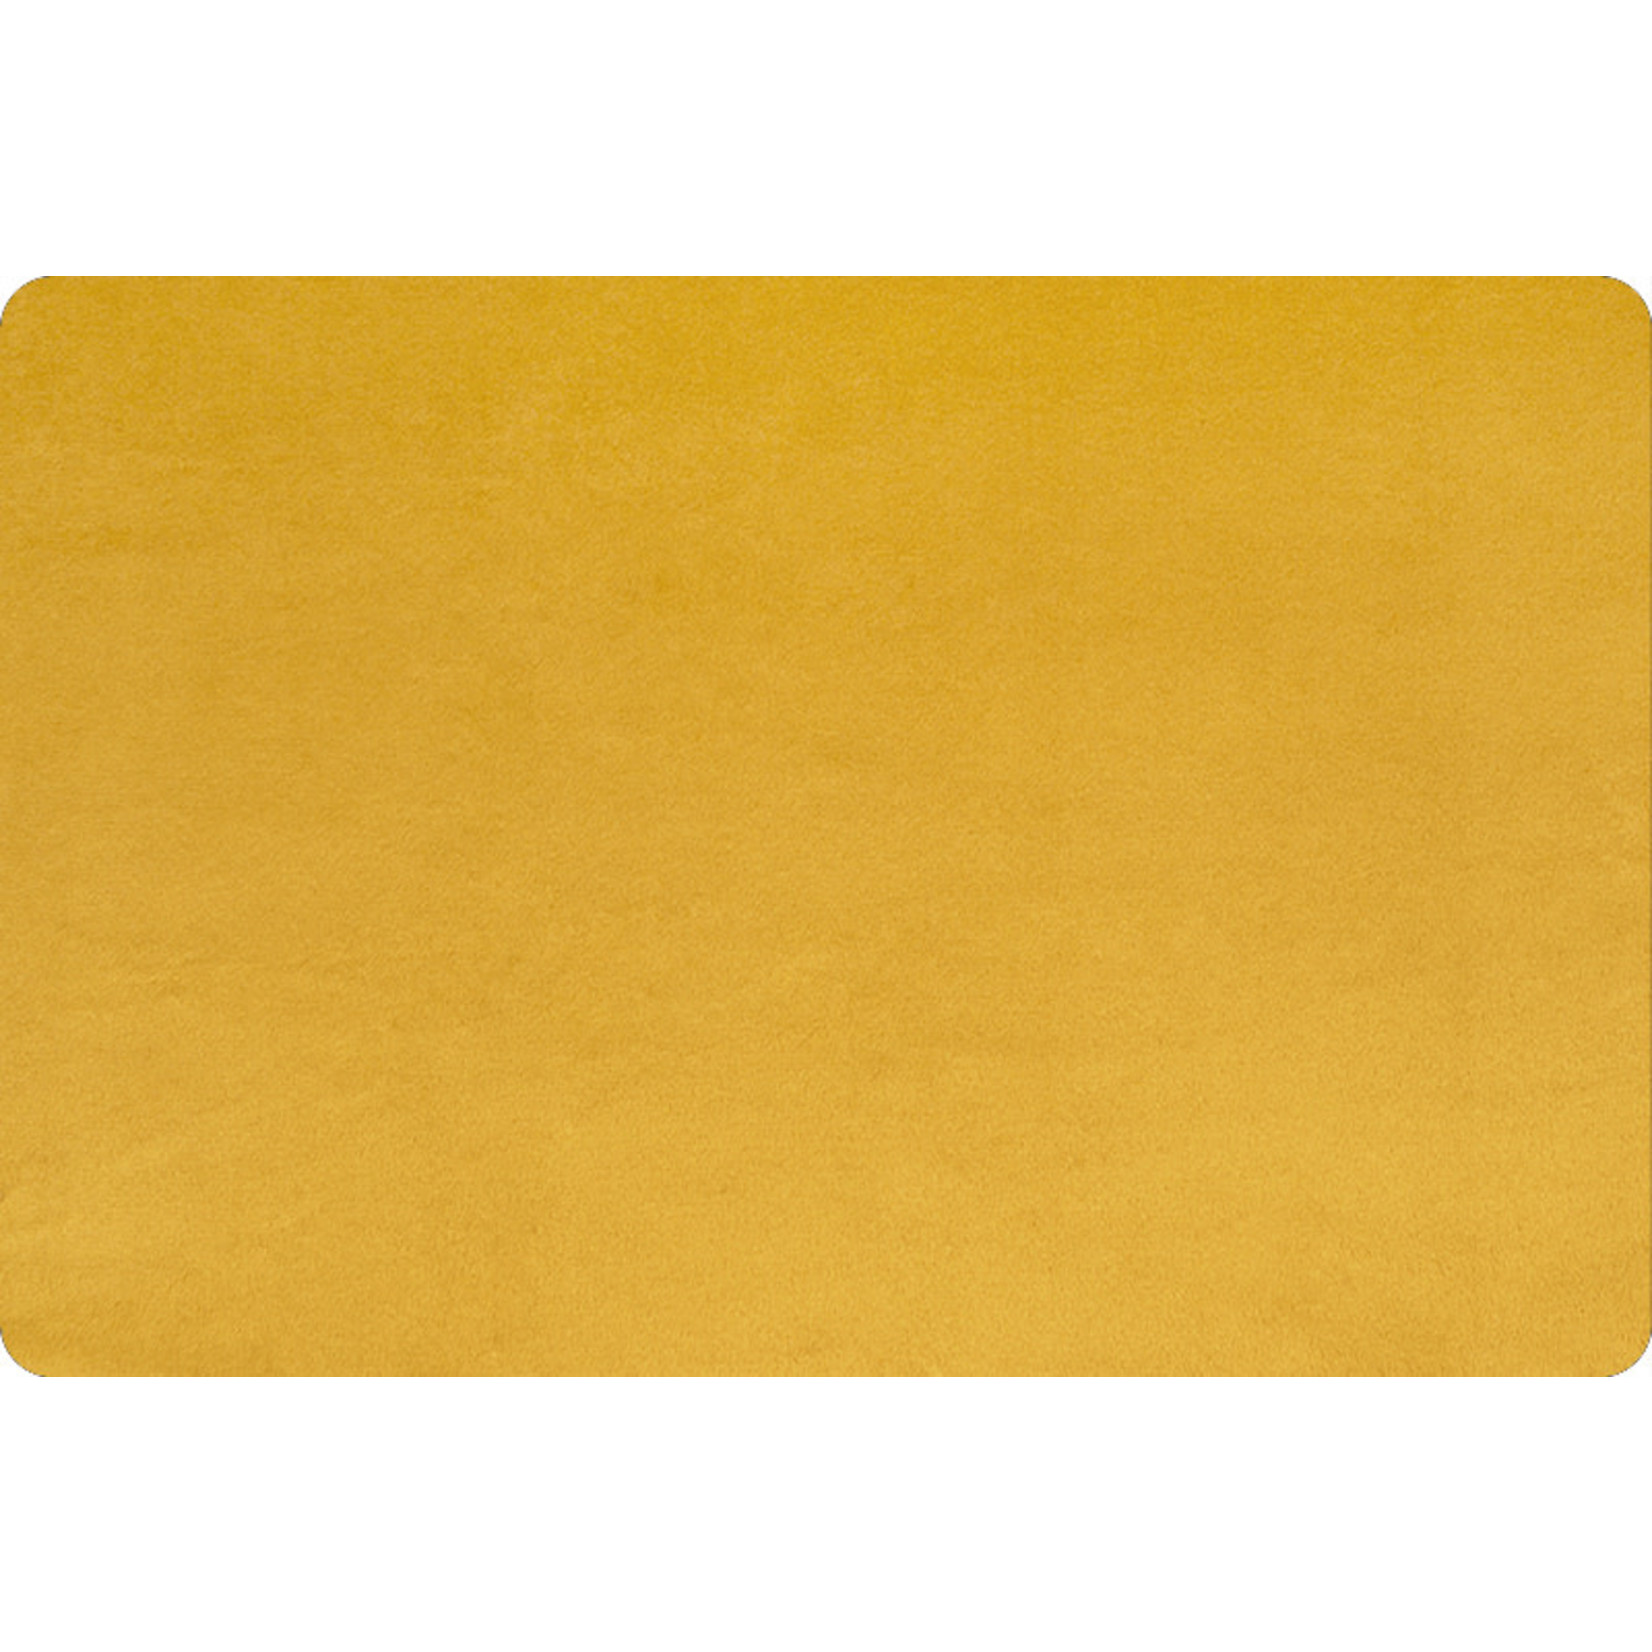 """Shannon Fabrics Minky, Extra Wide Solid Cuddle3, 90"""" Golden, (by the inch)"""